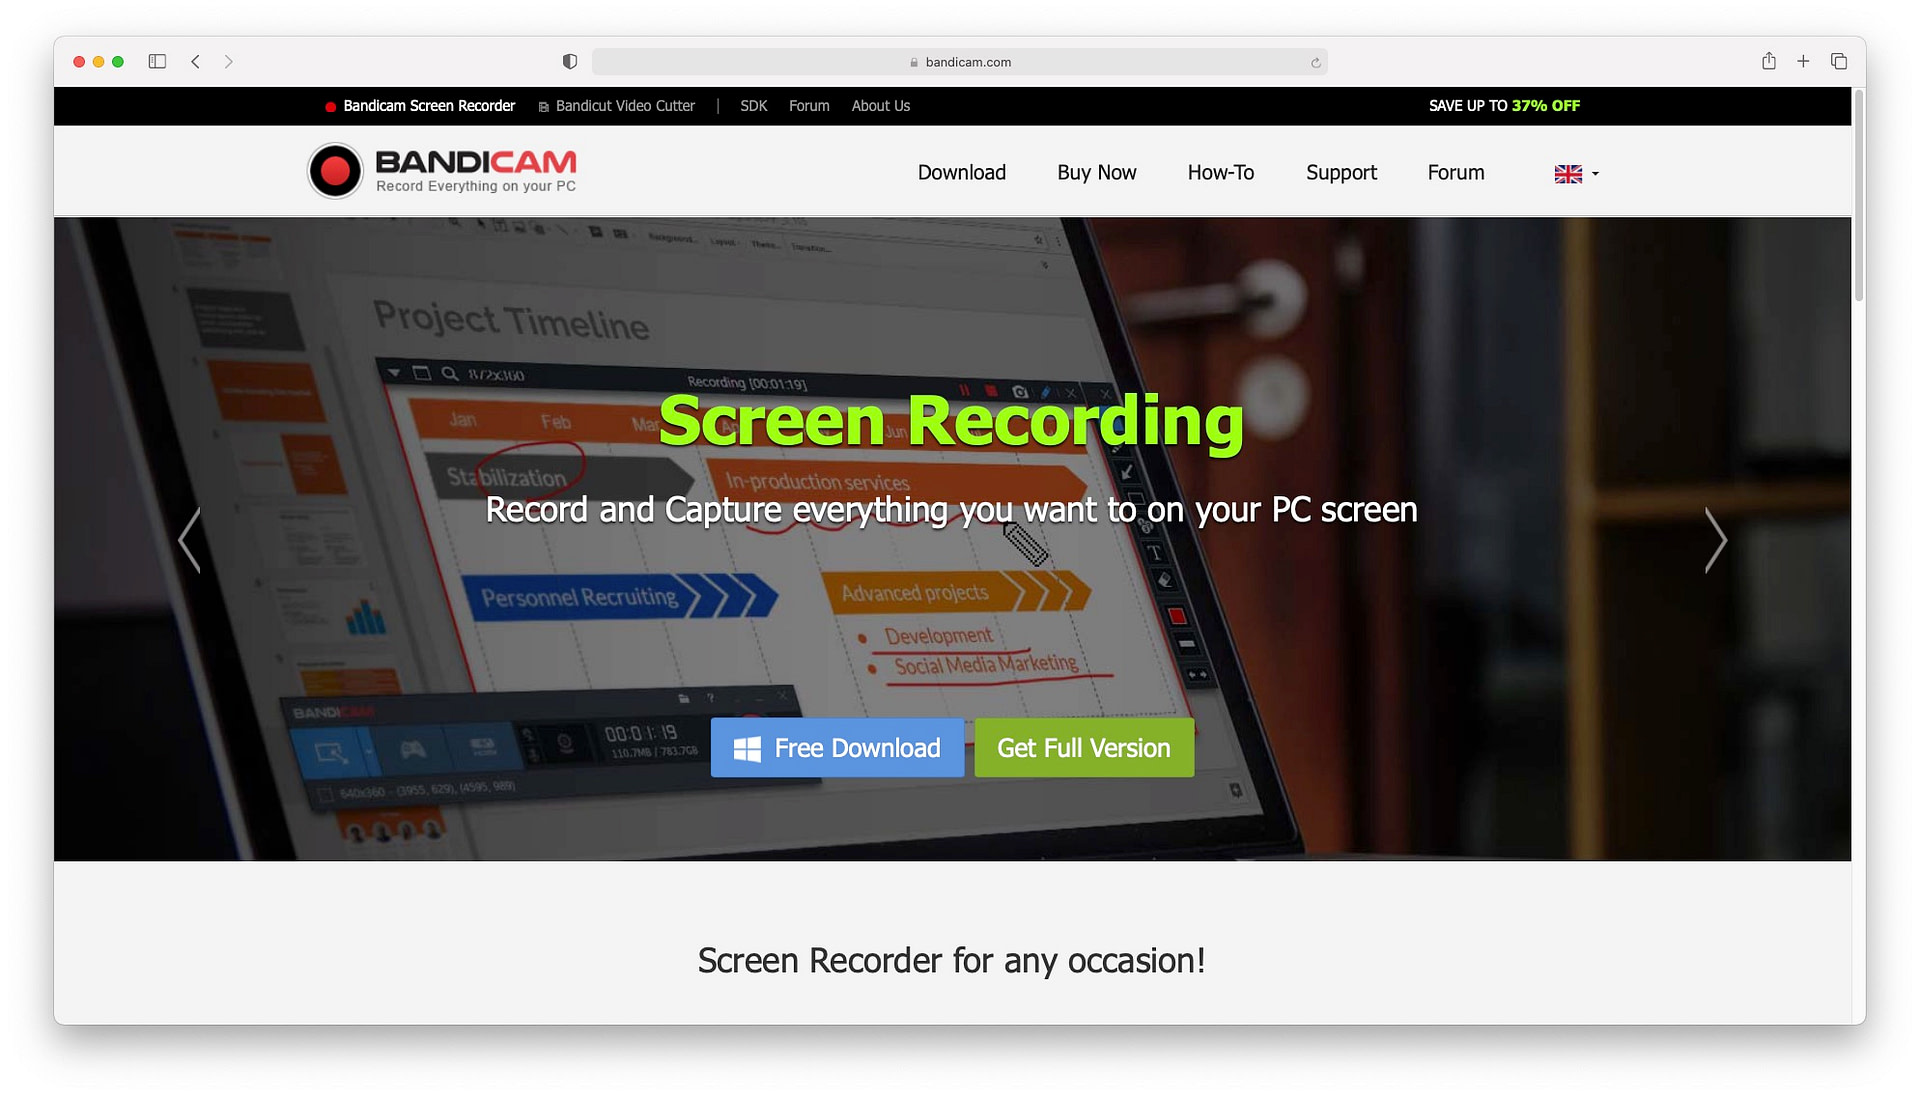 Bandicam - one of the best screen recording software